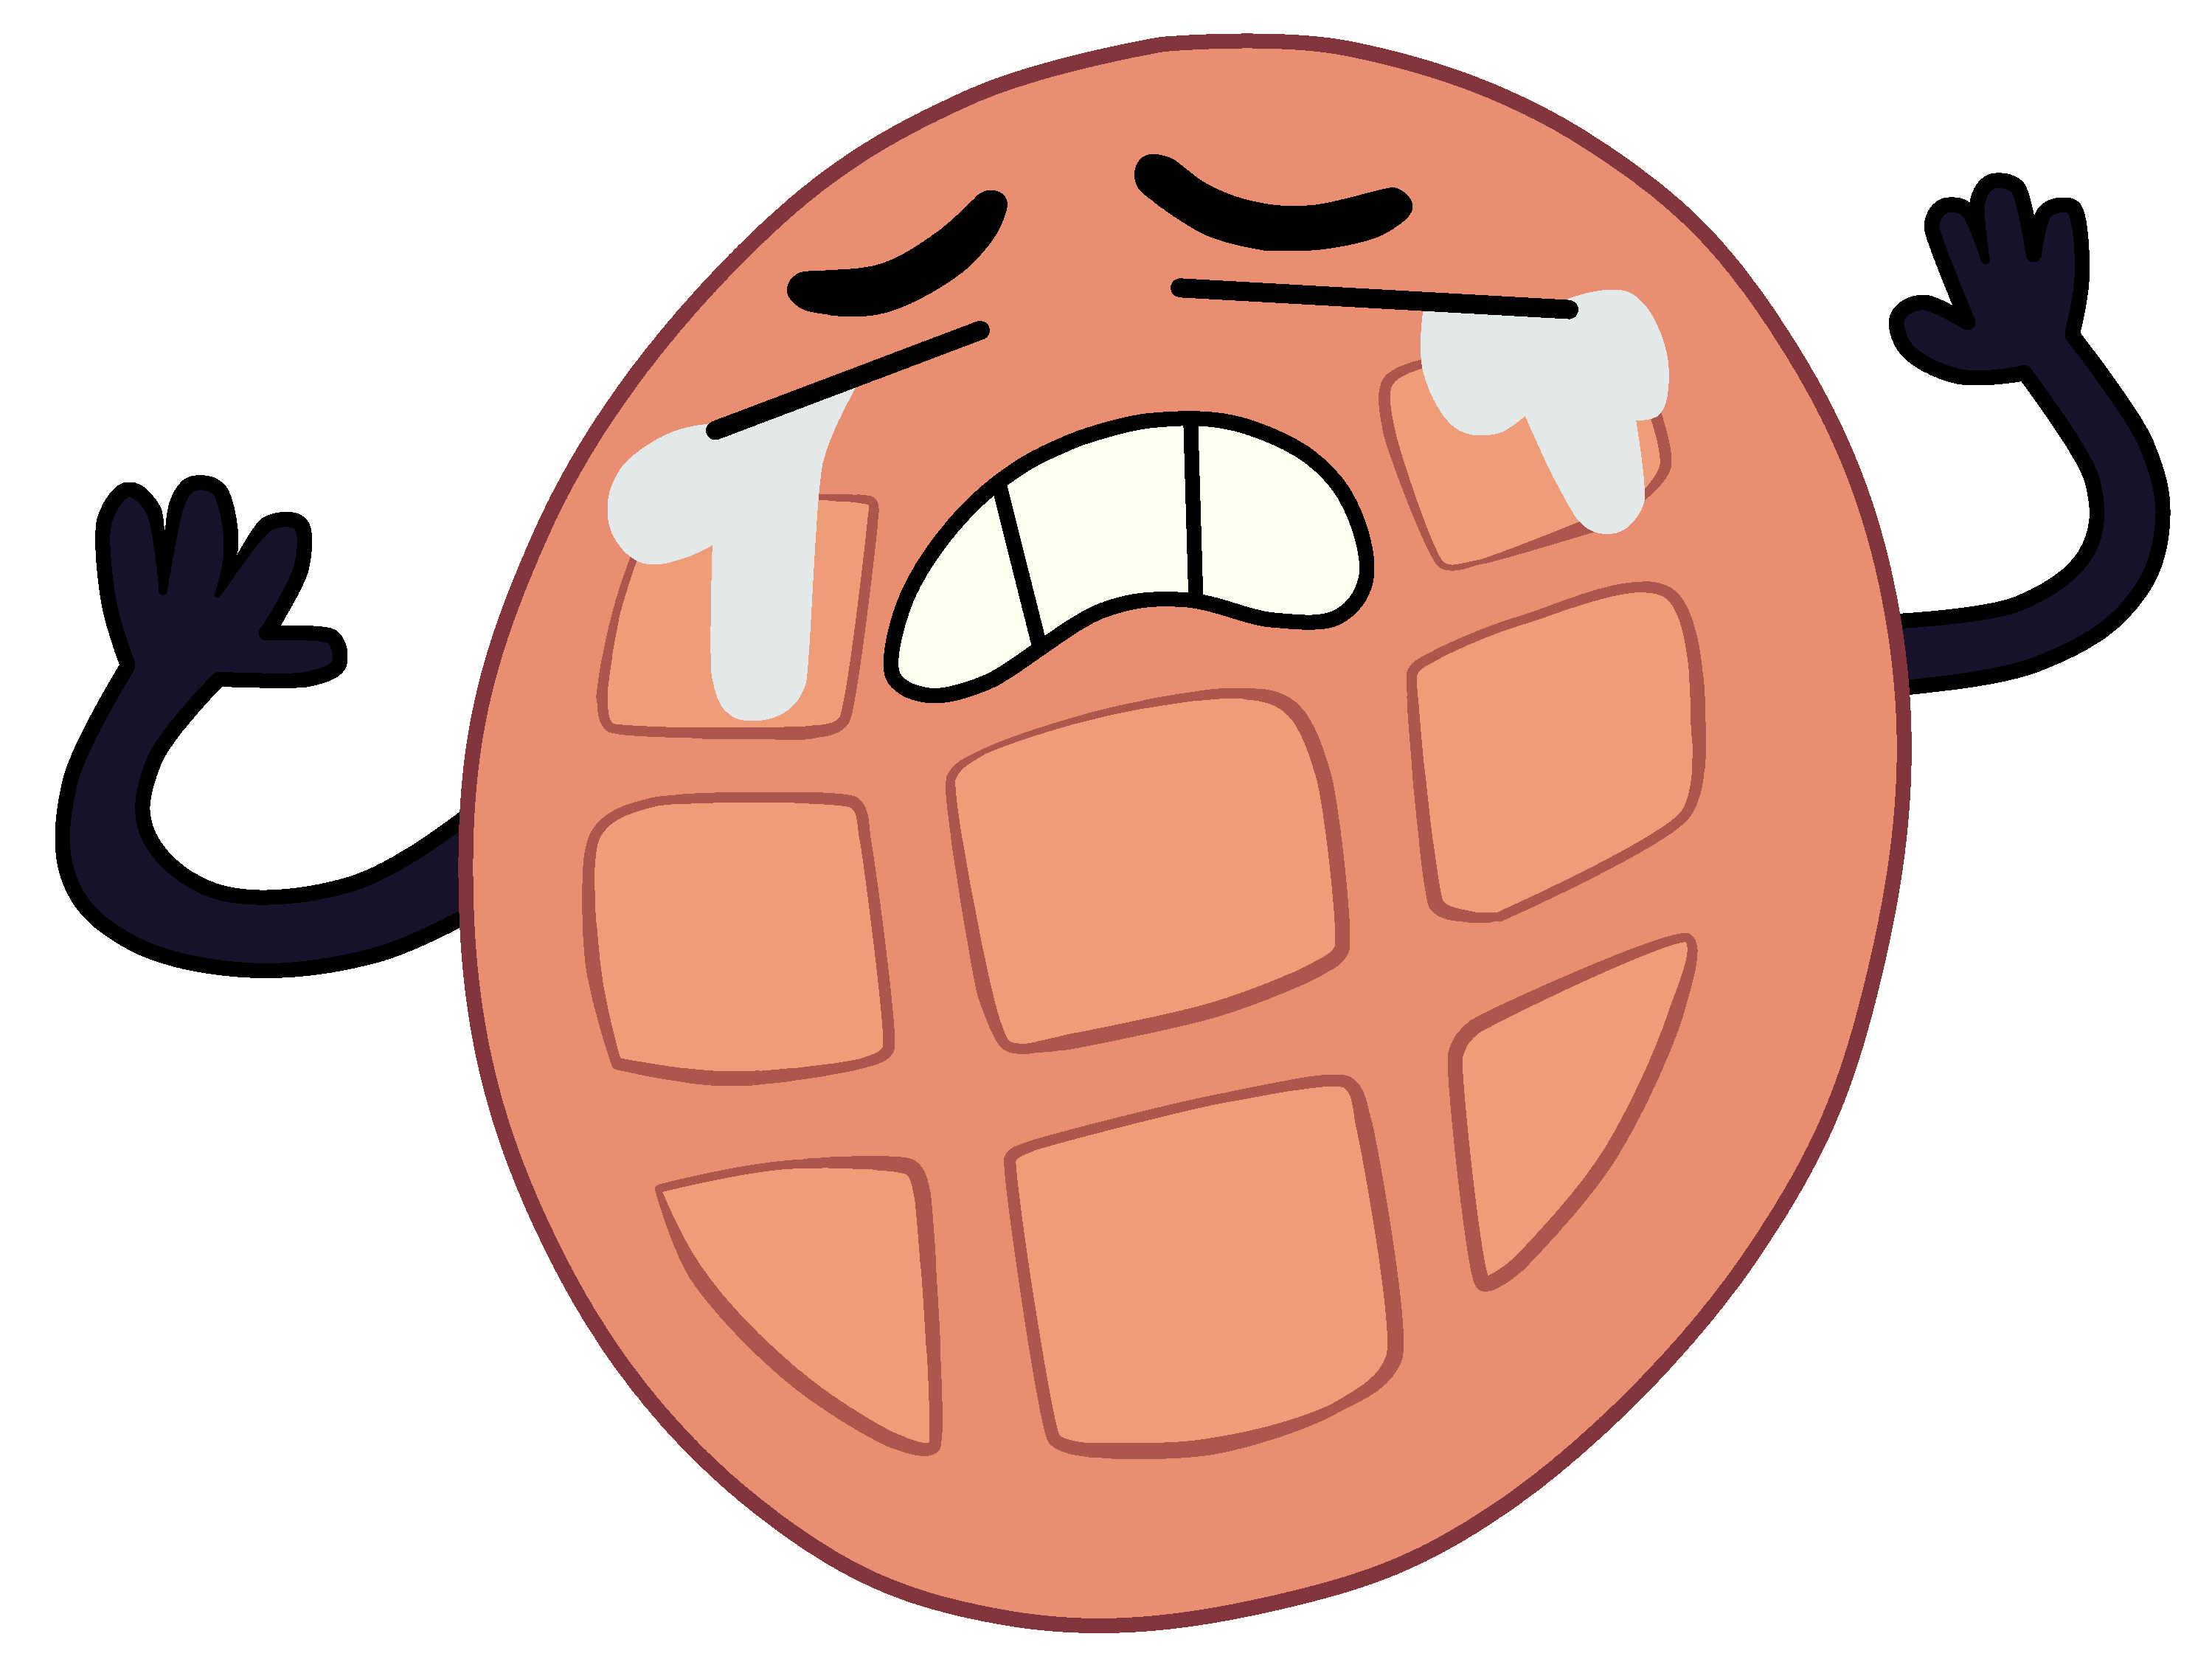 Waffle cartoon png. Image crying steven universe